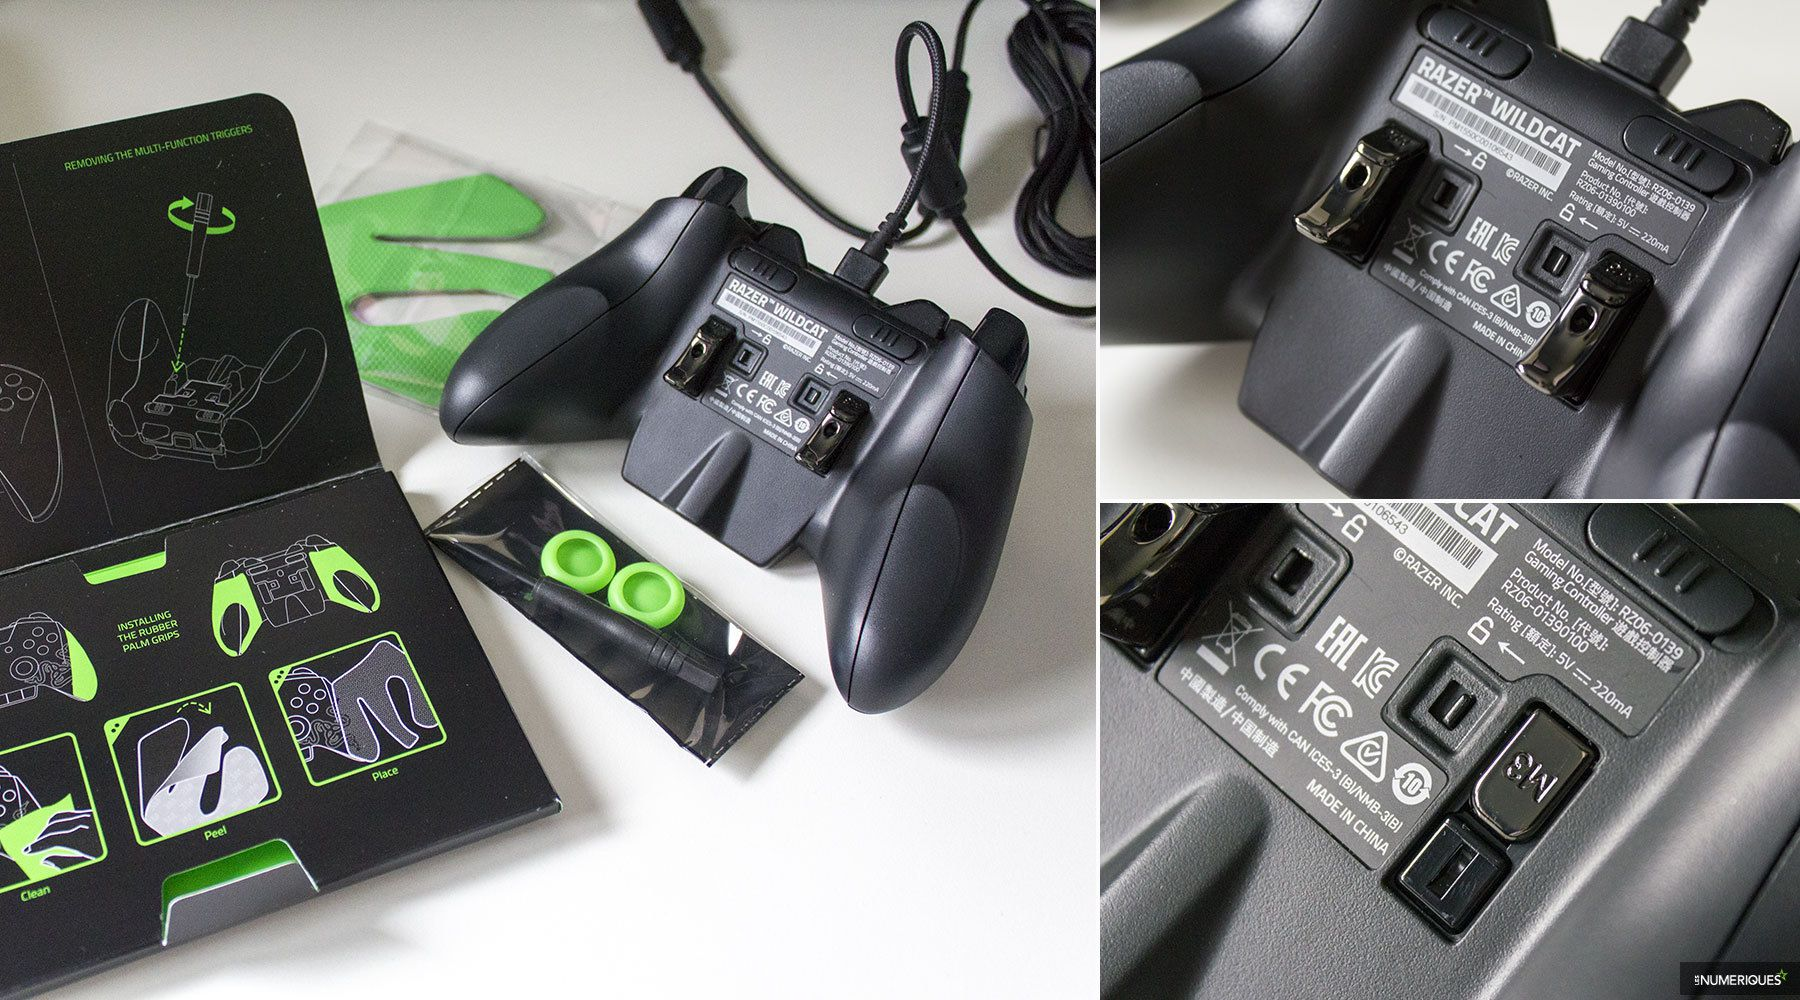 Razer Wildcat Test Complet Joypad Les Numriques Gaming Controller For Xbox One Rz06 01390100 R3m1 02